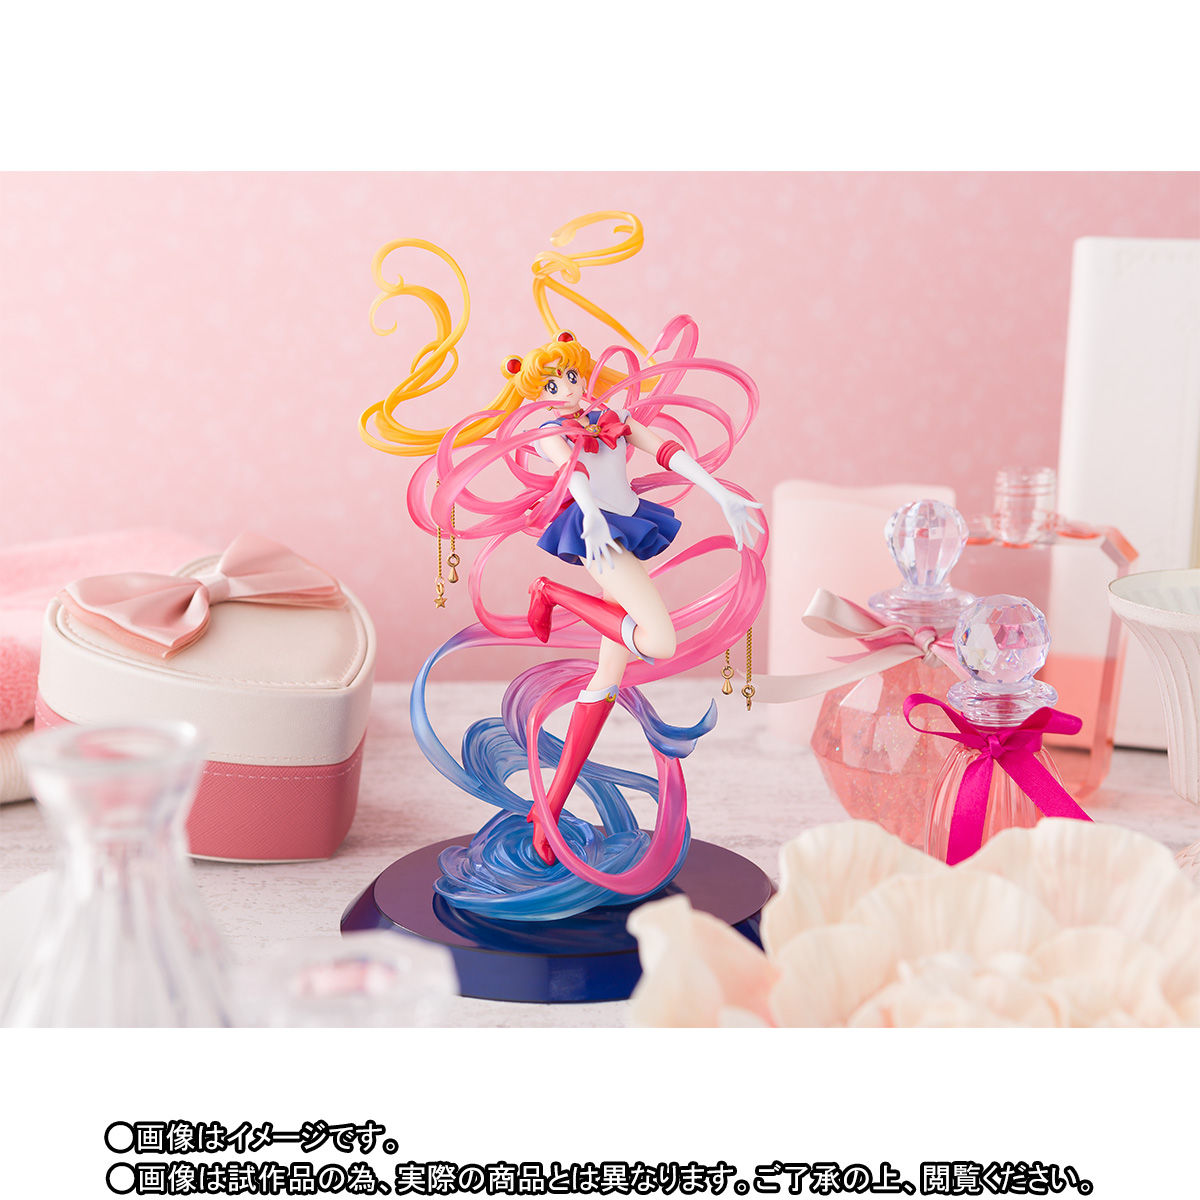 Figuarts Zero chouette『セーラームーン -Moon Crystal Power, Make Up-』完成品フィギュア-005